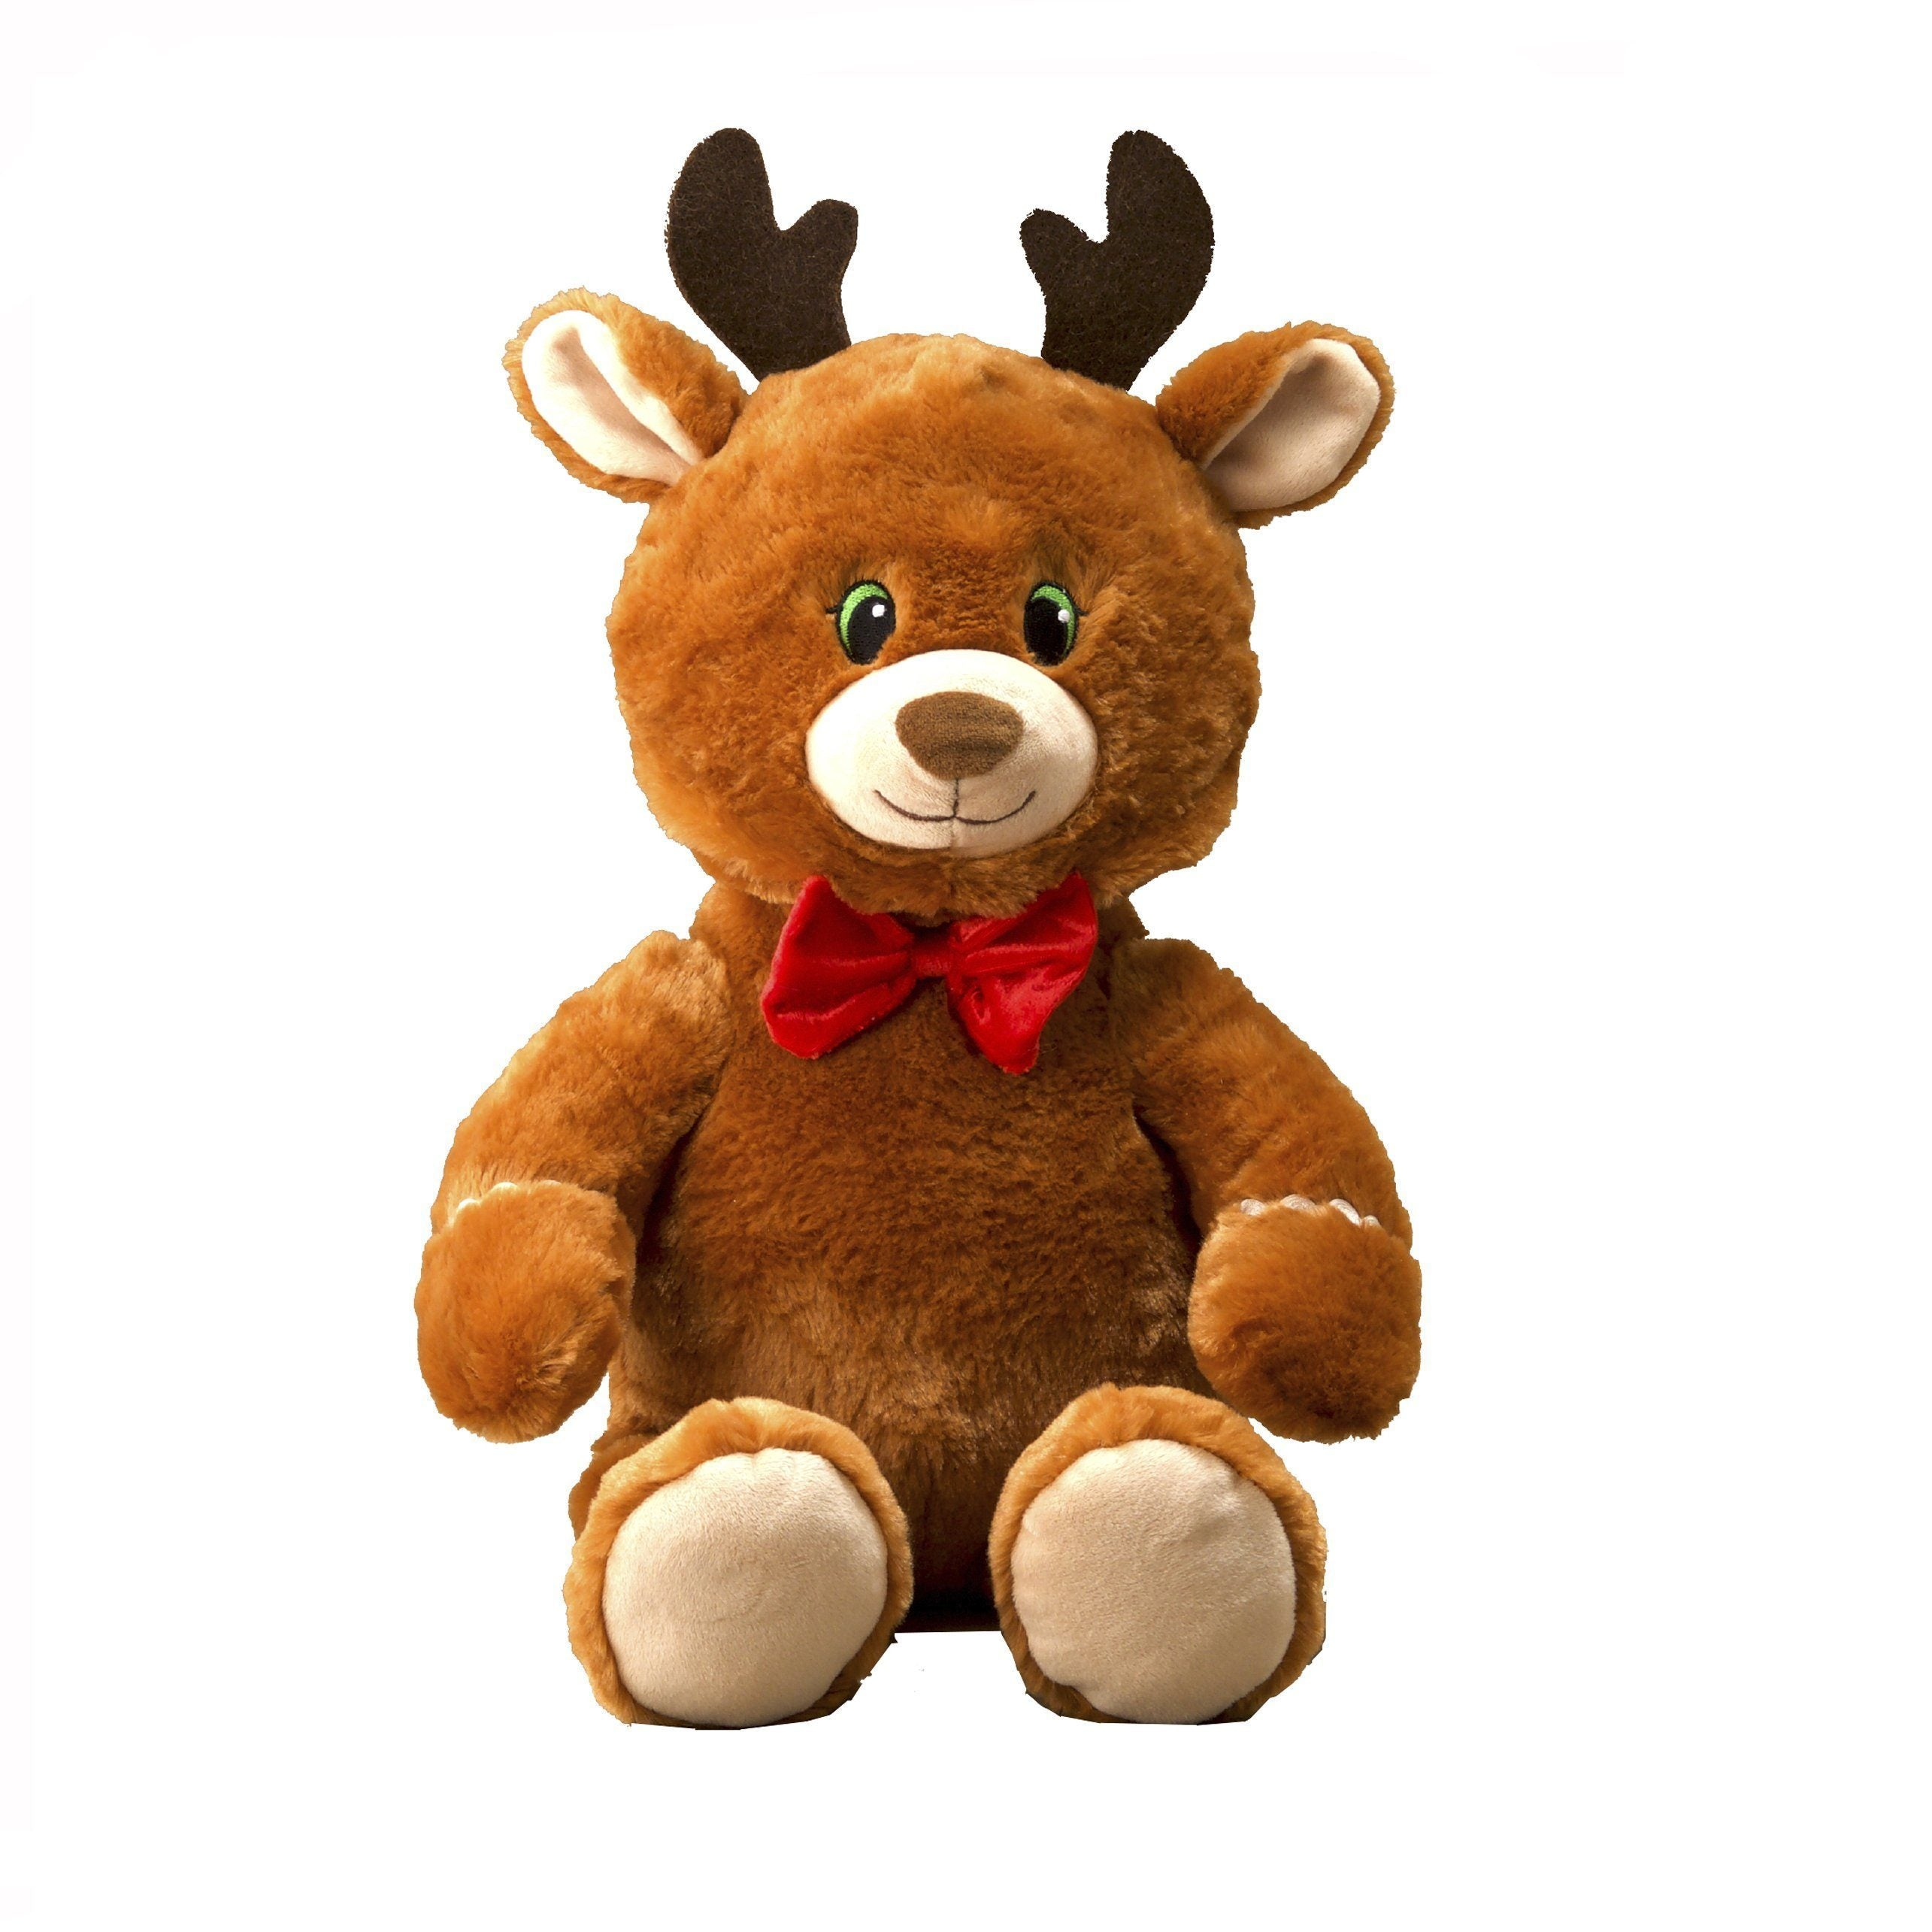 Flipemz Reindeer to Gingerbread Man Plush Toy